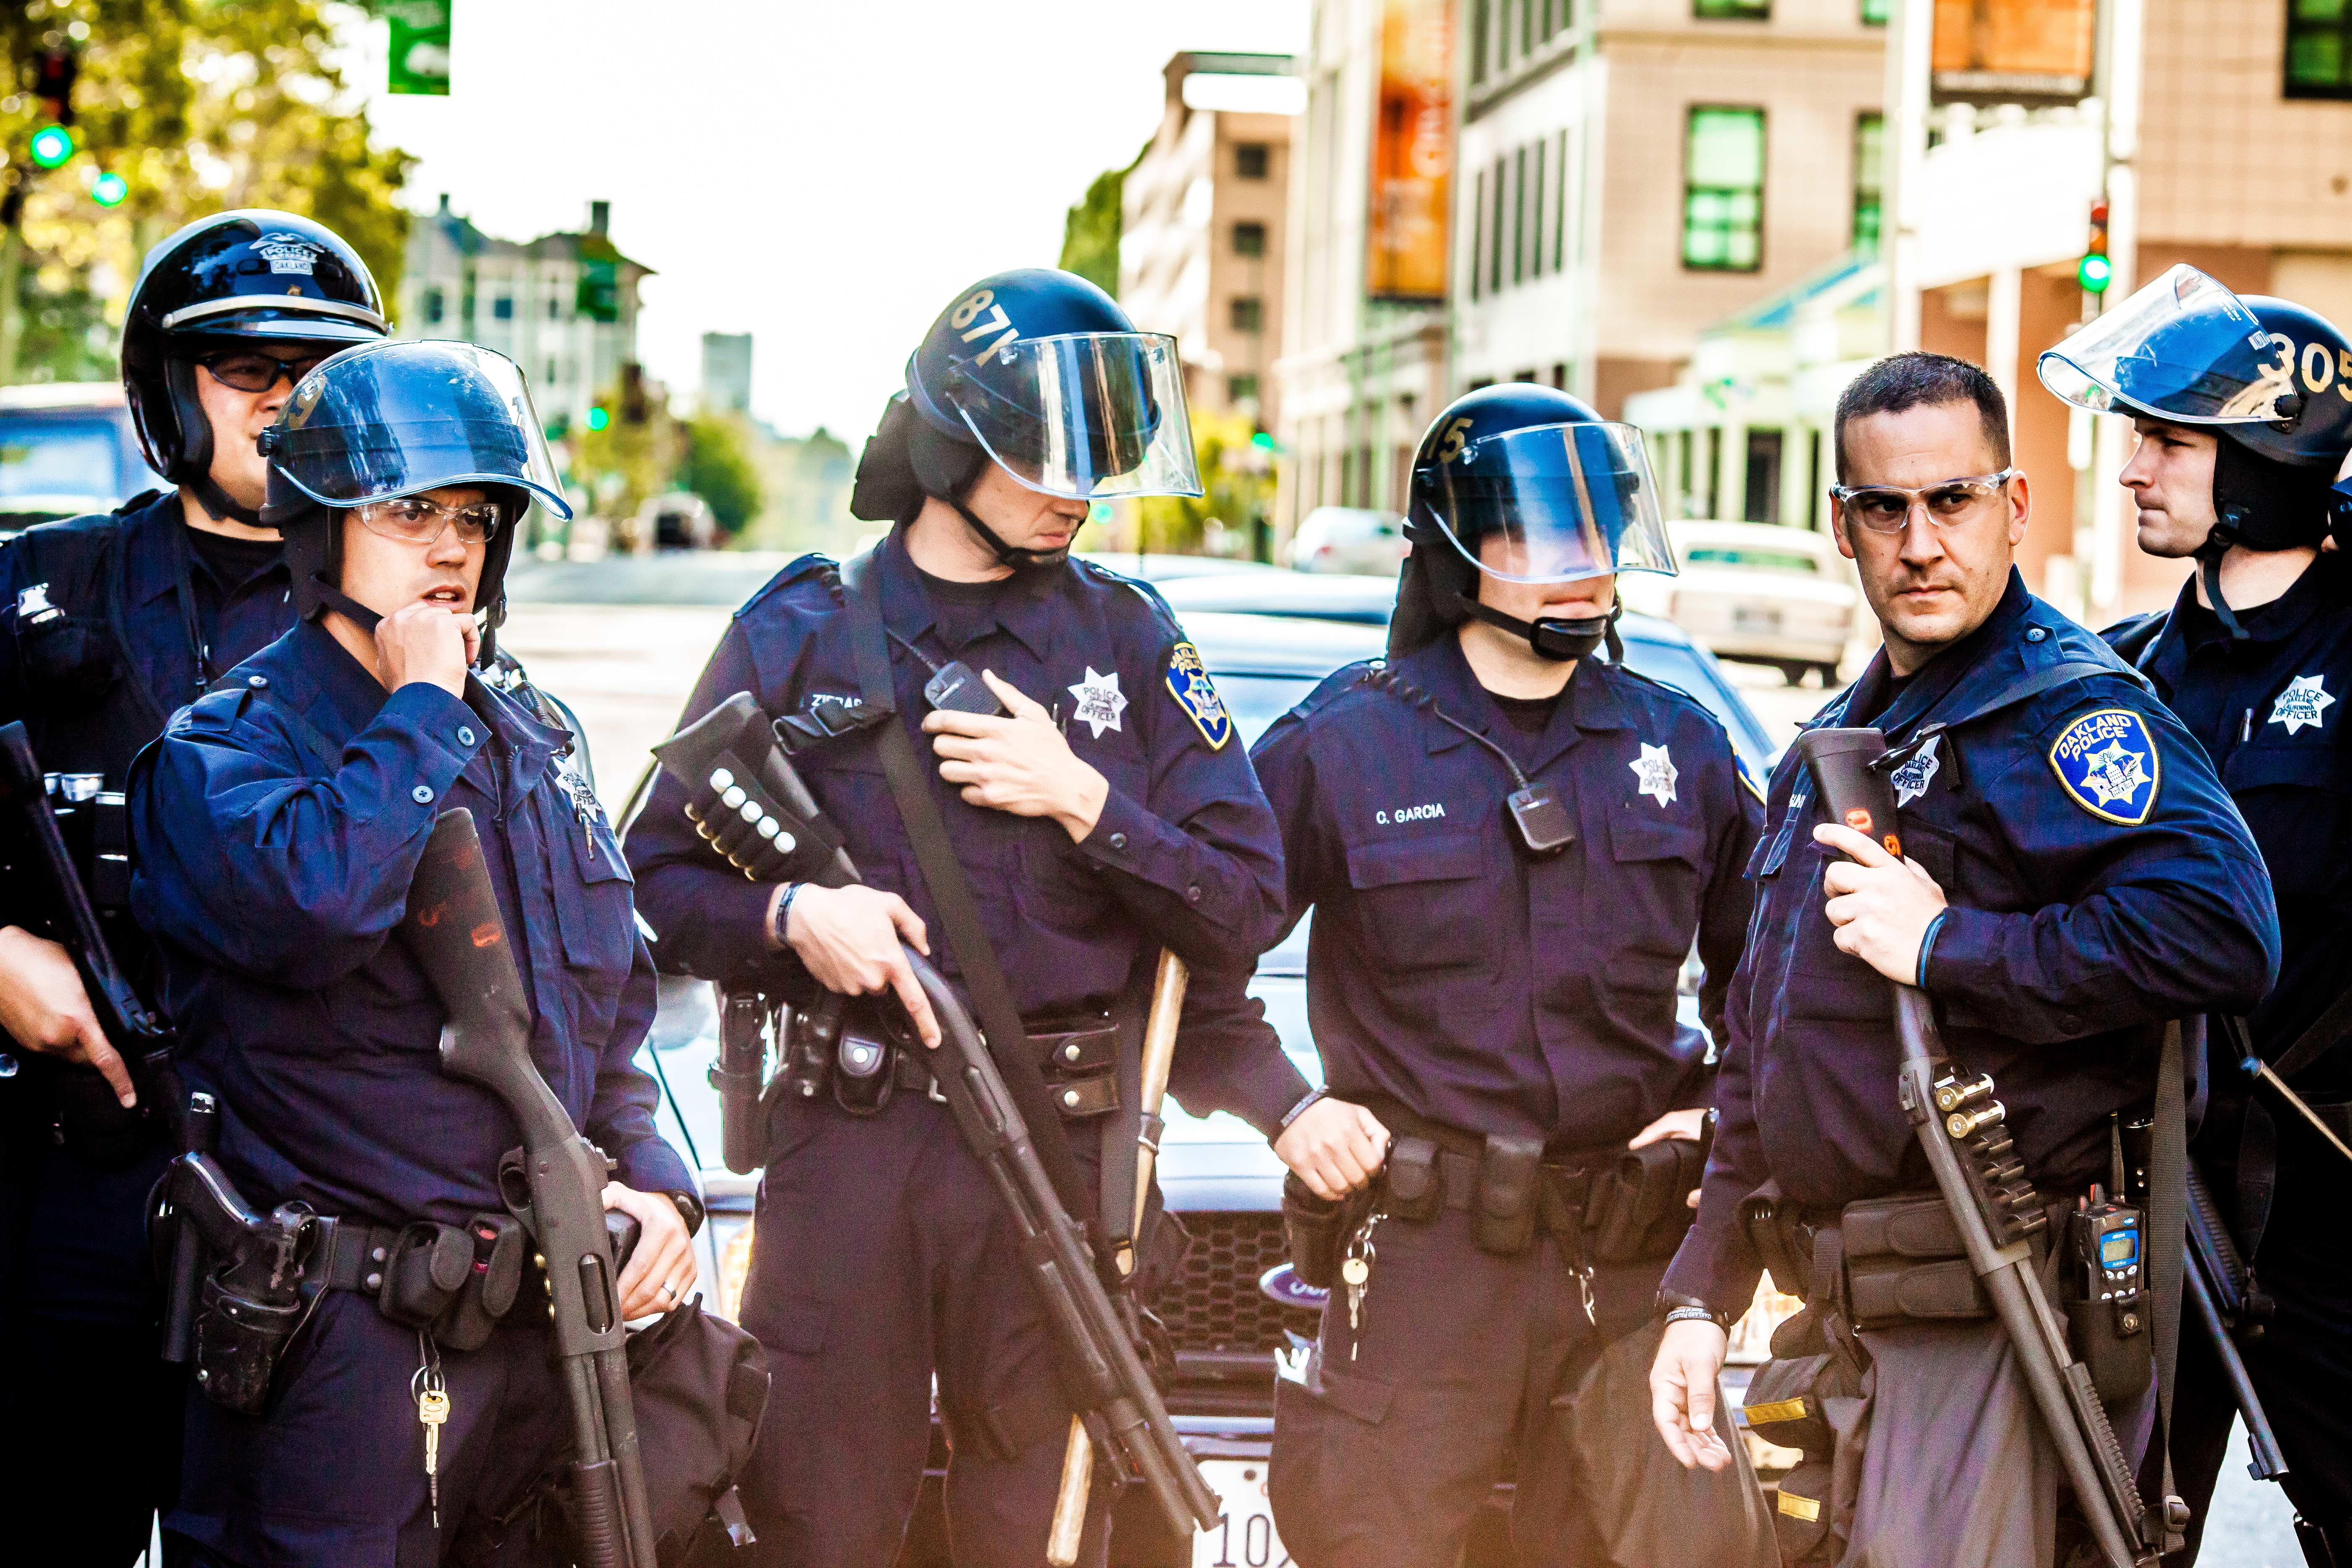 4 Oakland cops stand by their car